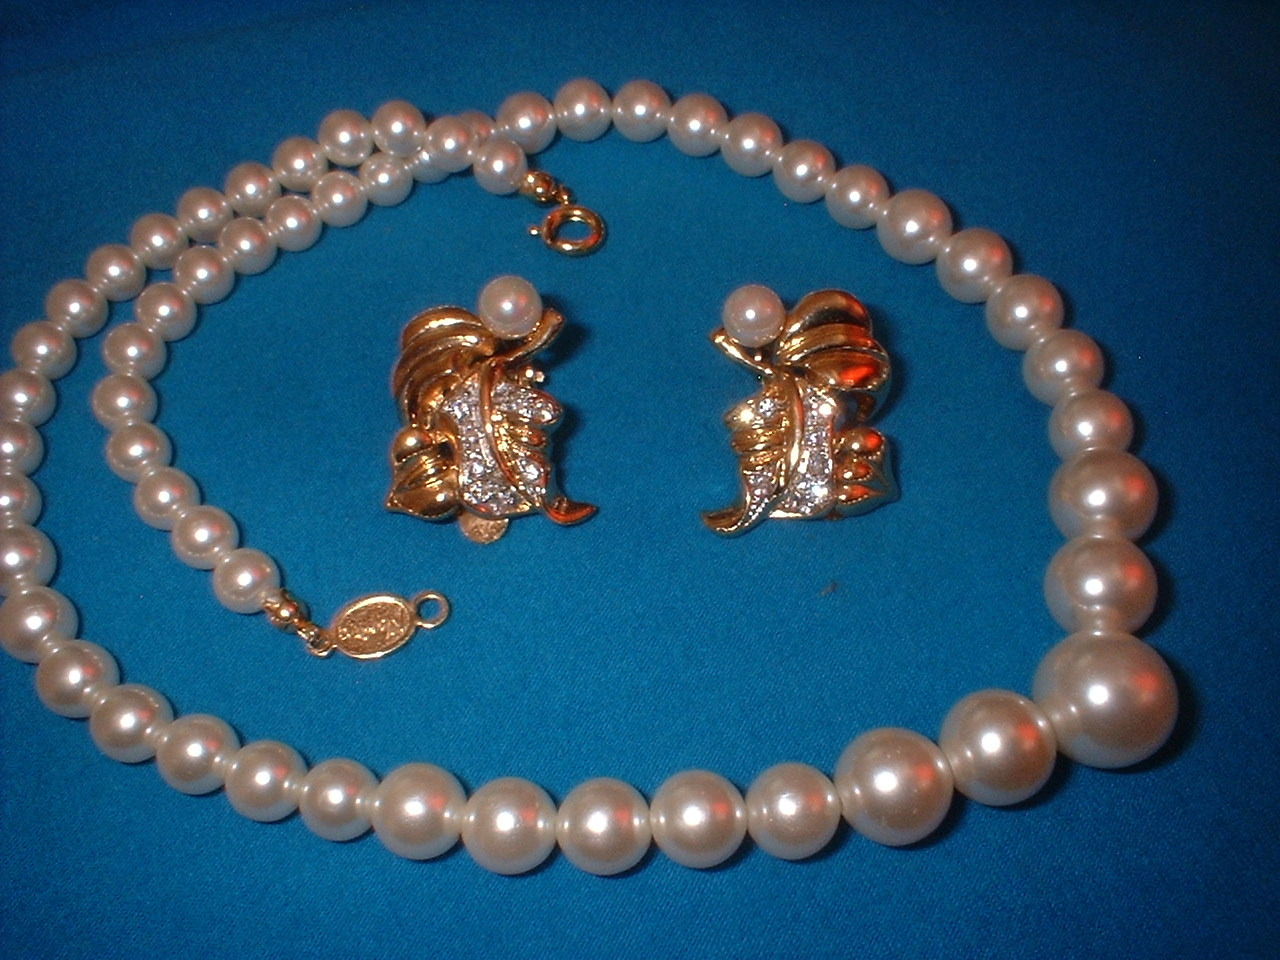 Napier peal necklace with earrings full